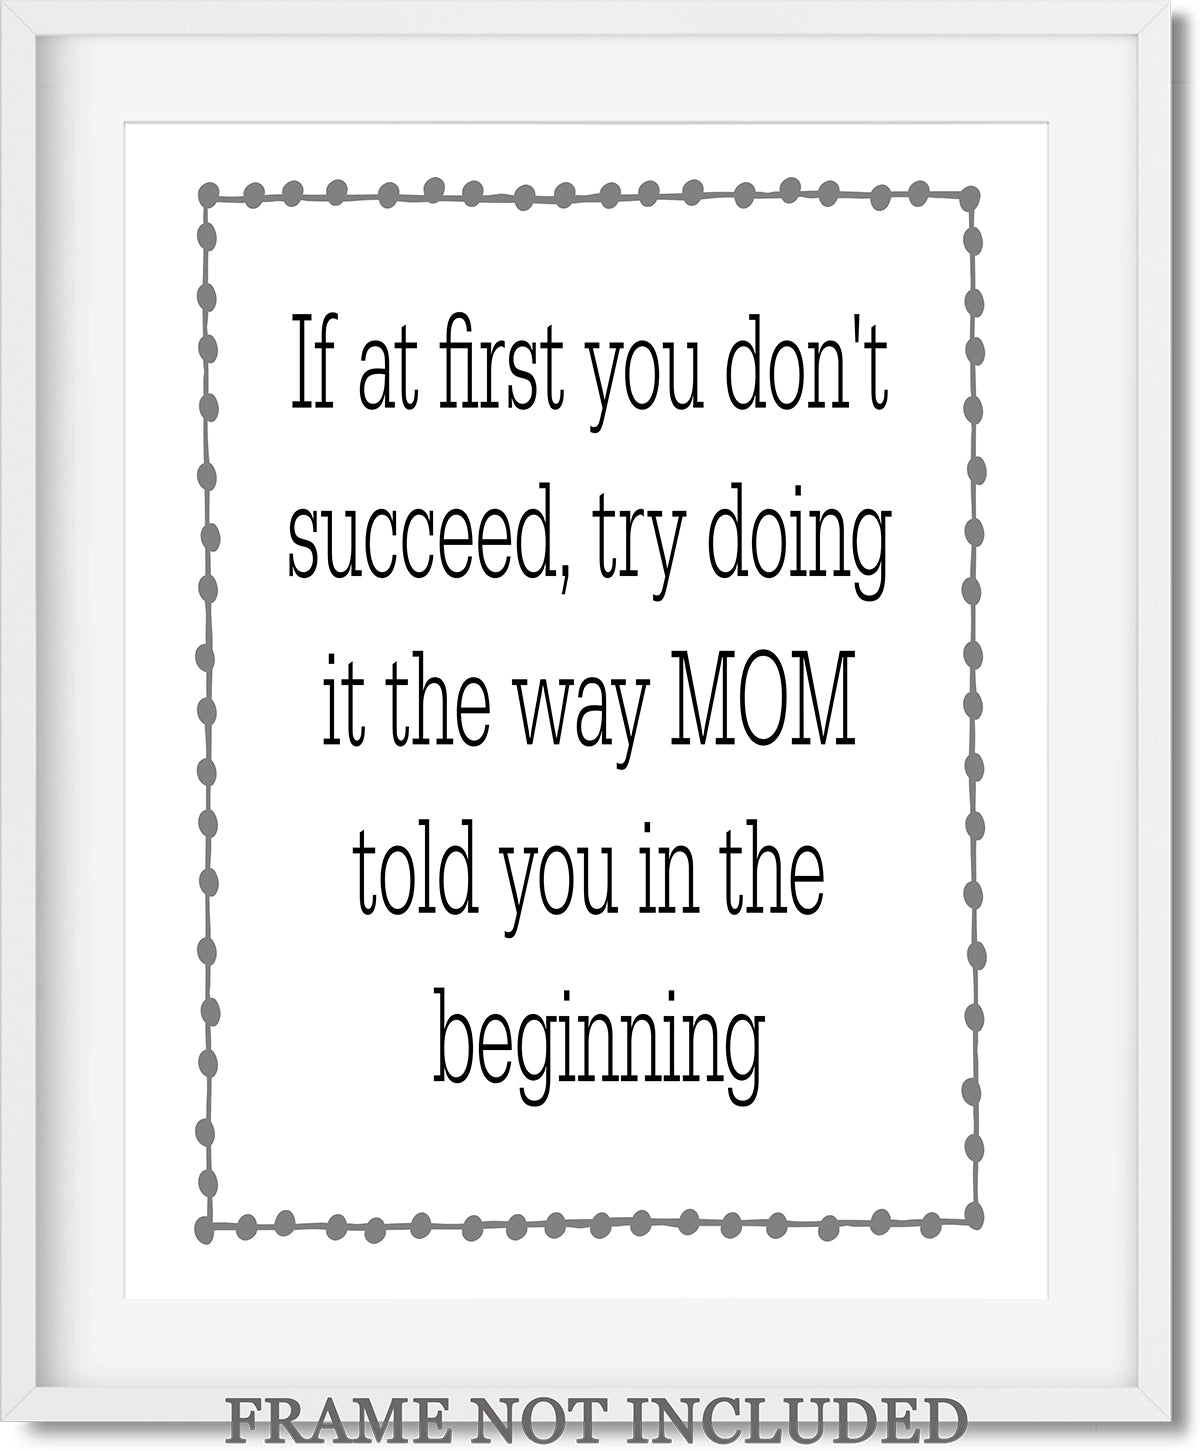 Listen to your Mother Quote Wall Art Decor Print - 11x14 unframed print